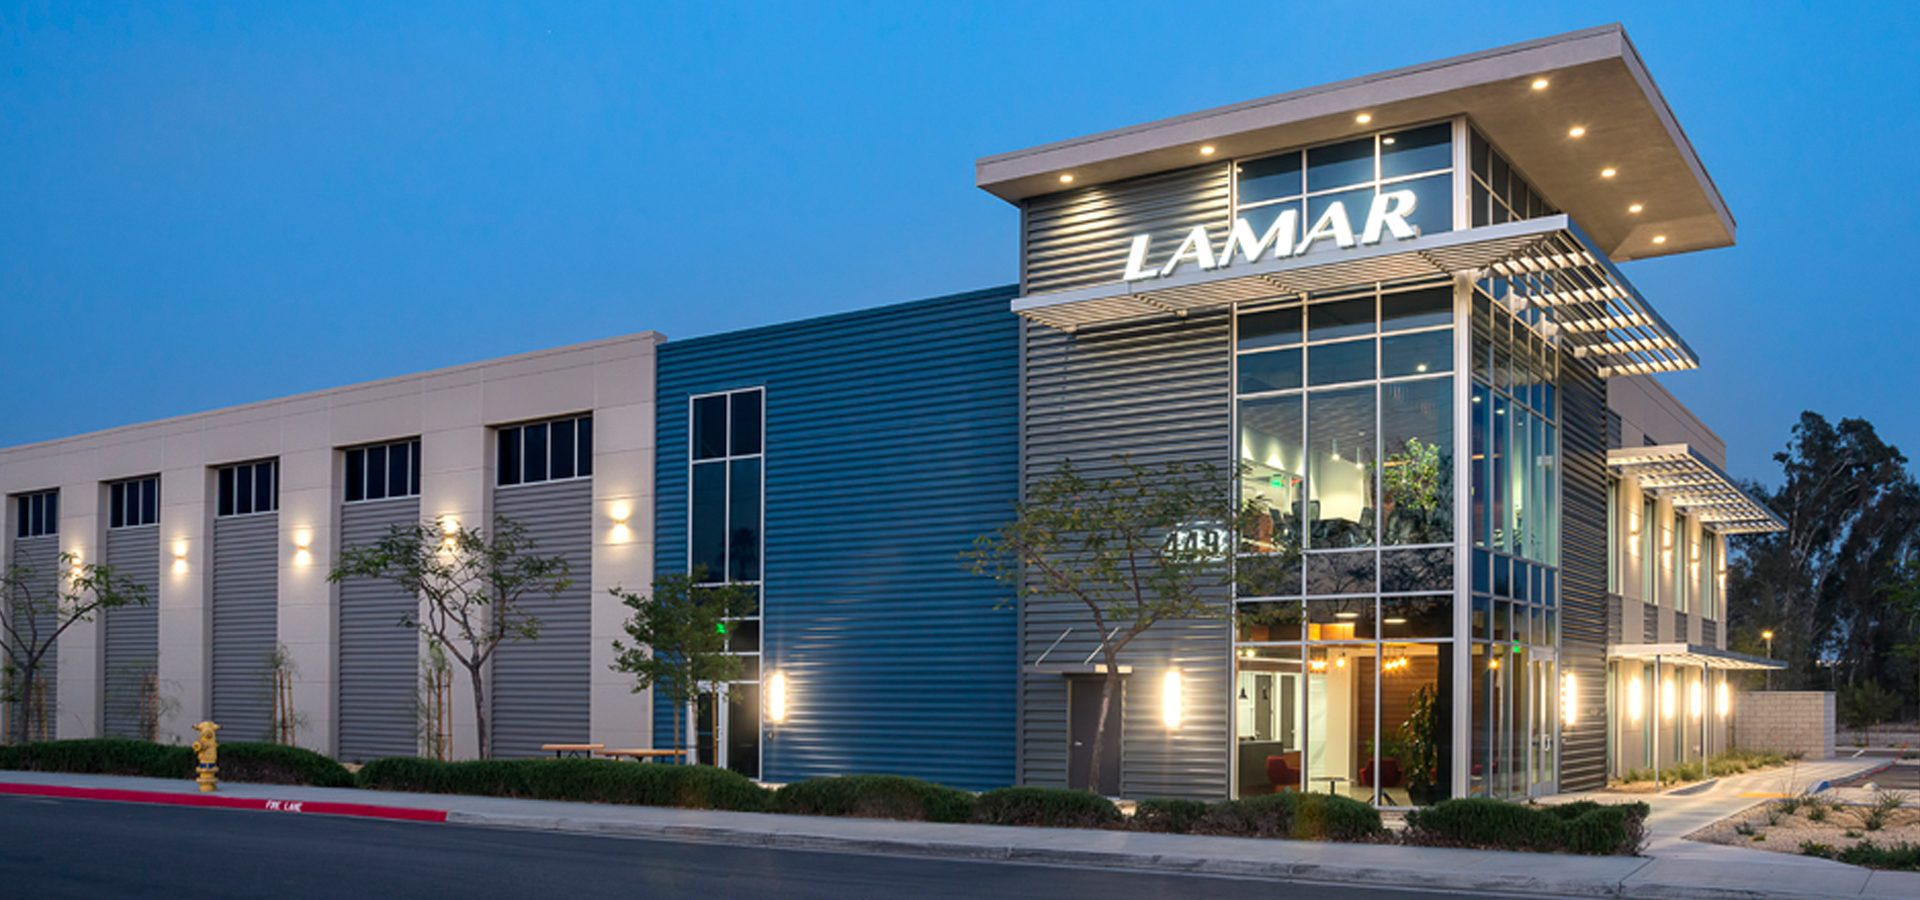 Lamar Advertising - San Bernardino exterior at dusk.